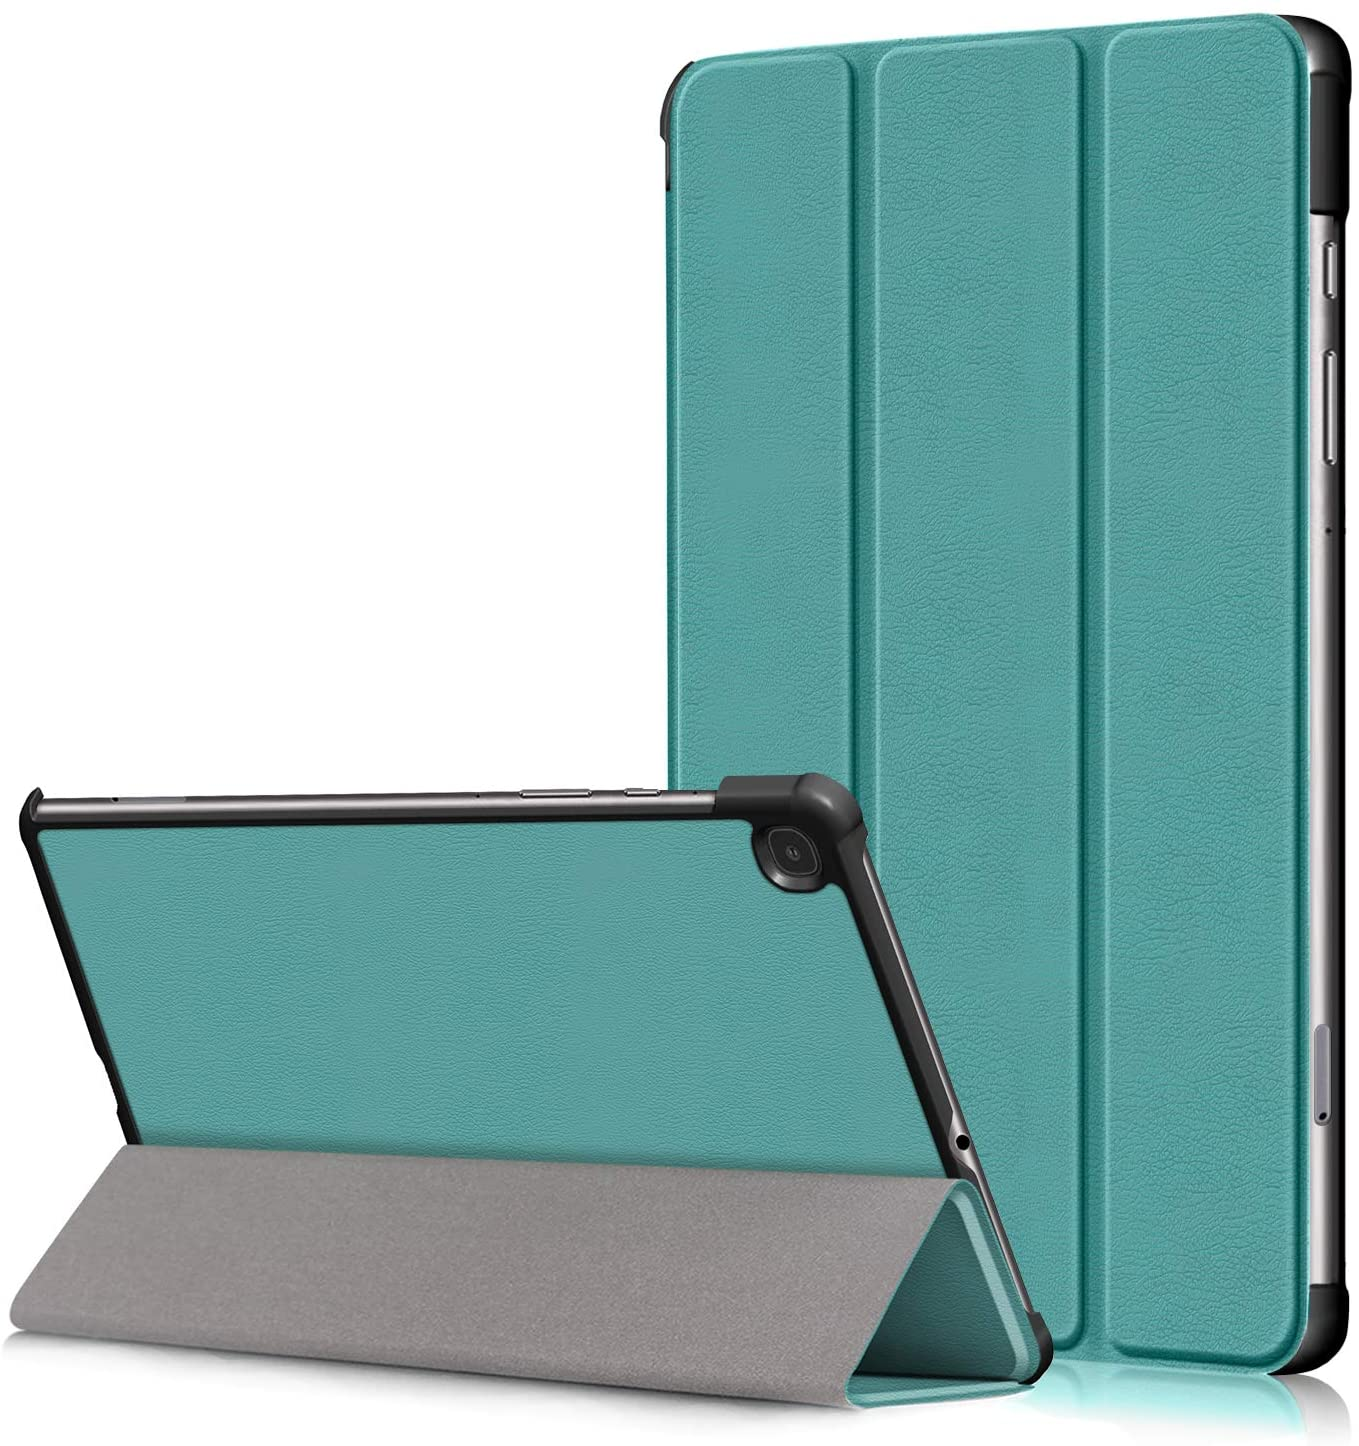 XBE Ultra Slim Case Compatible with Samsung Galaxy Tab S6 Lite 10.4 inch SM-P610 SM-P615 Fold Cover with Function Stand and Auto Sleep/Wake, Malachite Green